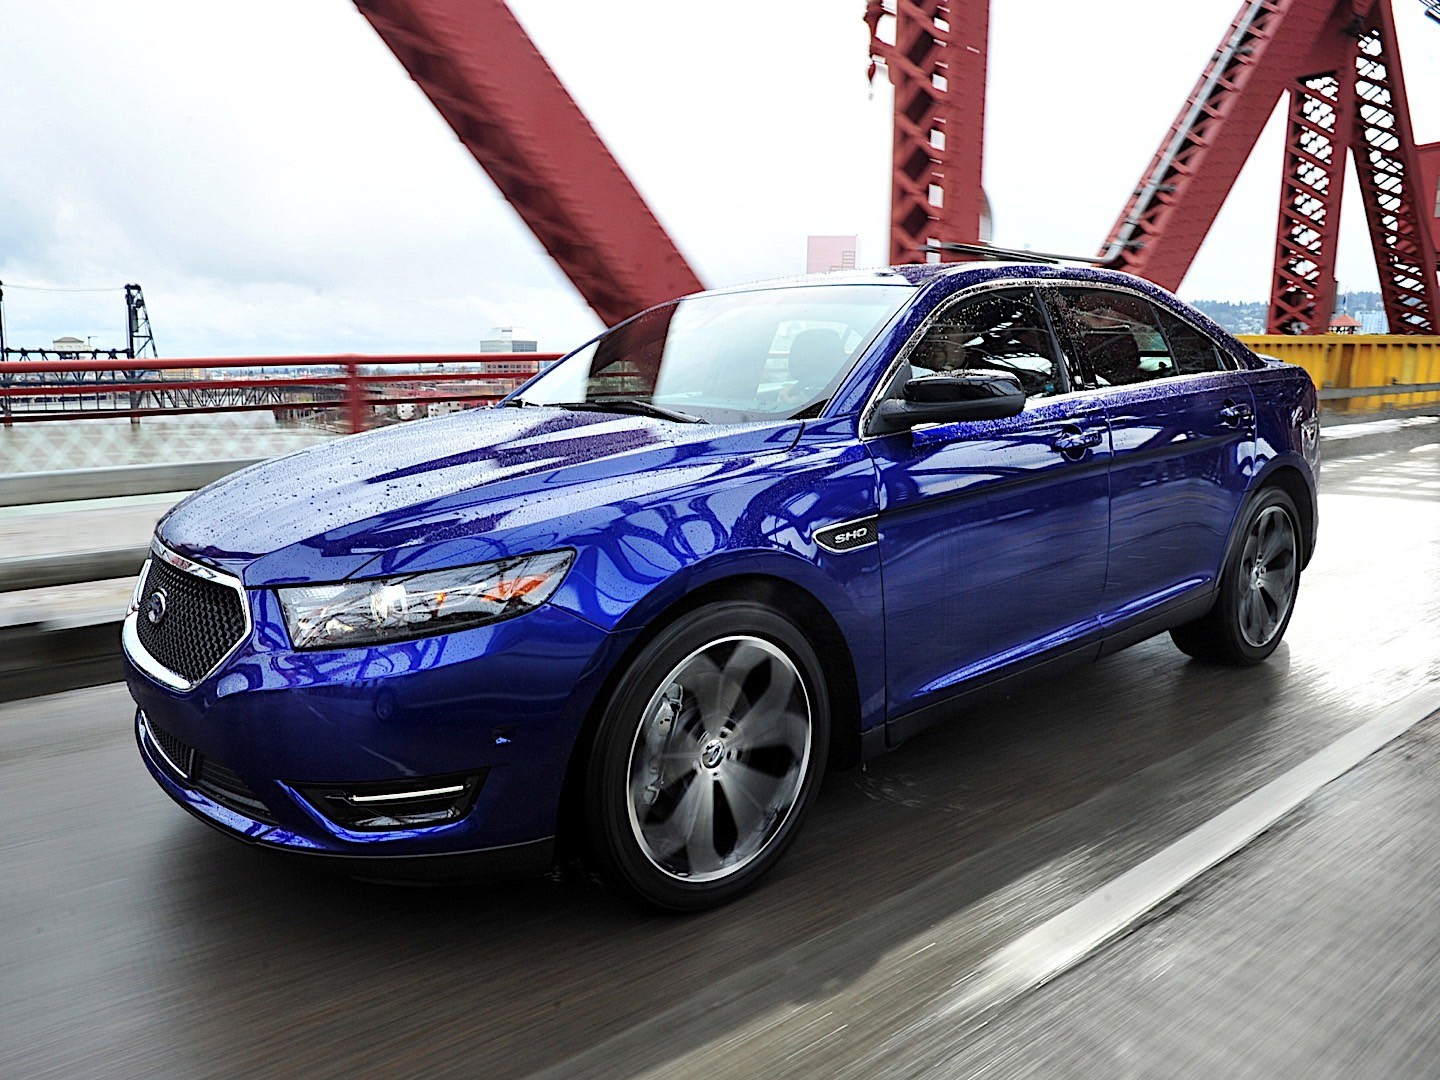 FORD Taurus SHO specs & photos - 2012, 2013, 2014, 2015, 2016, 2017, 2018 - autoevolution